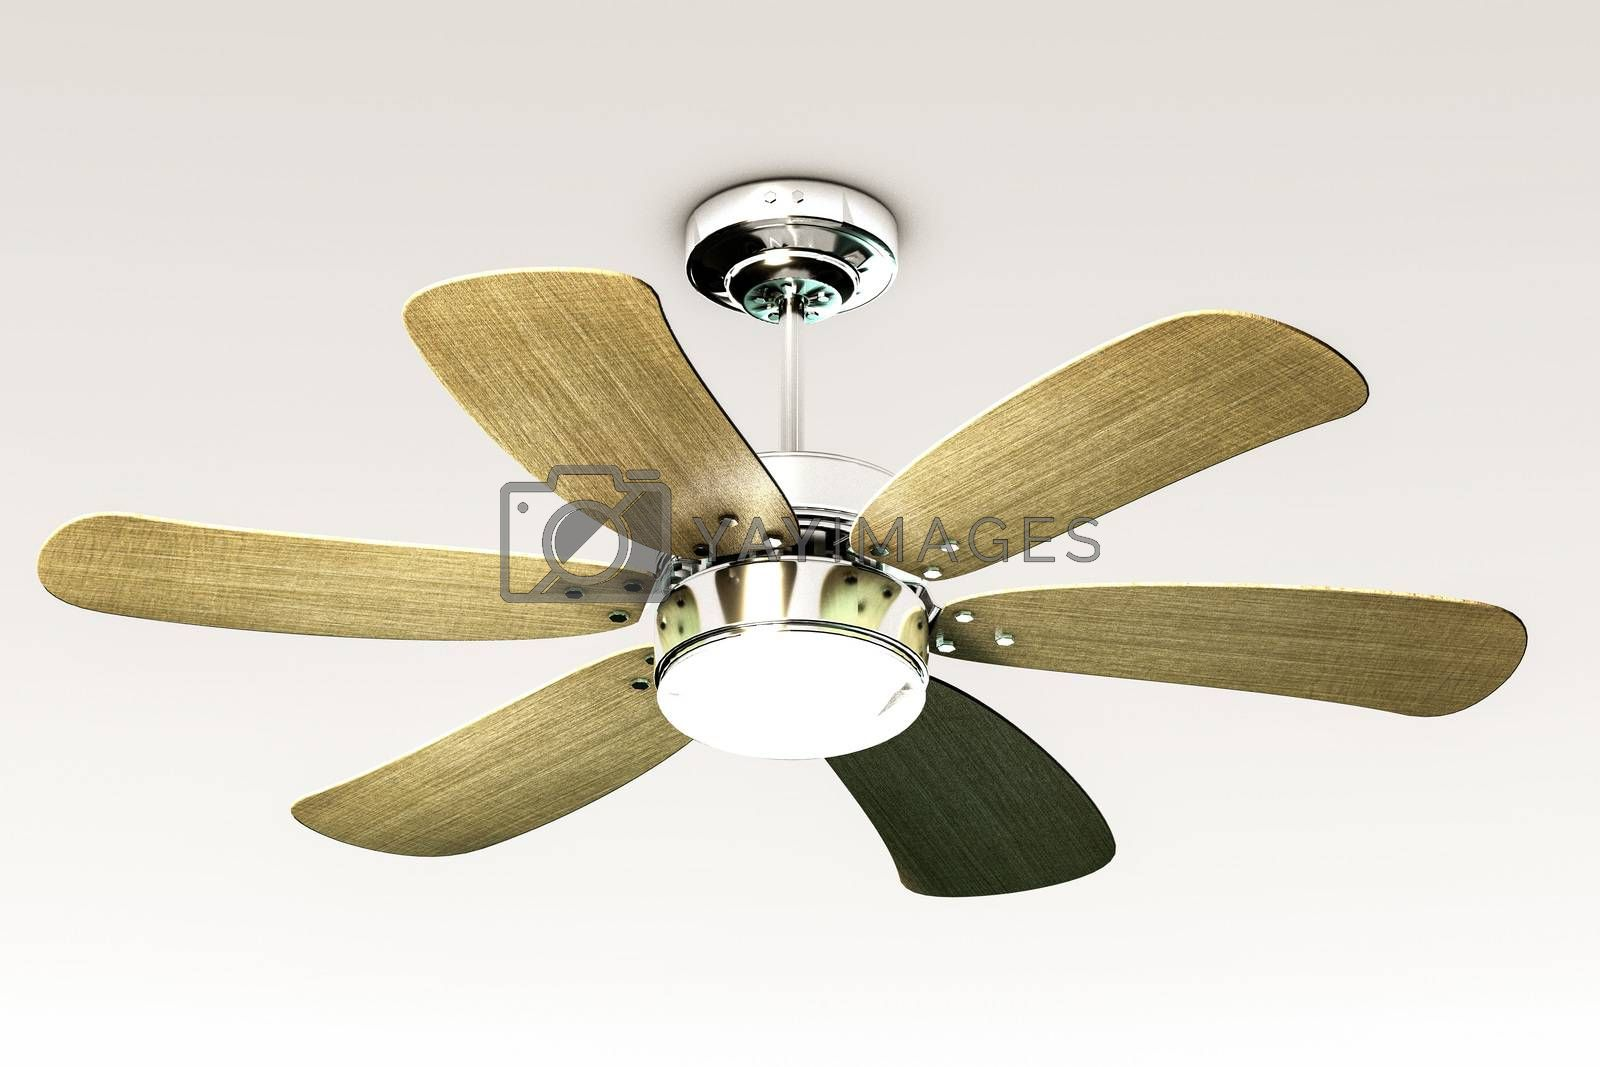 3d illustration of a ceiling fan isolated on white background